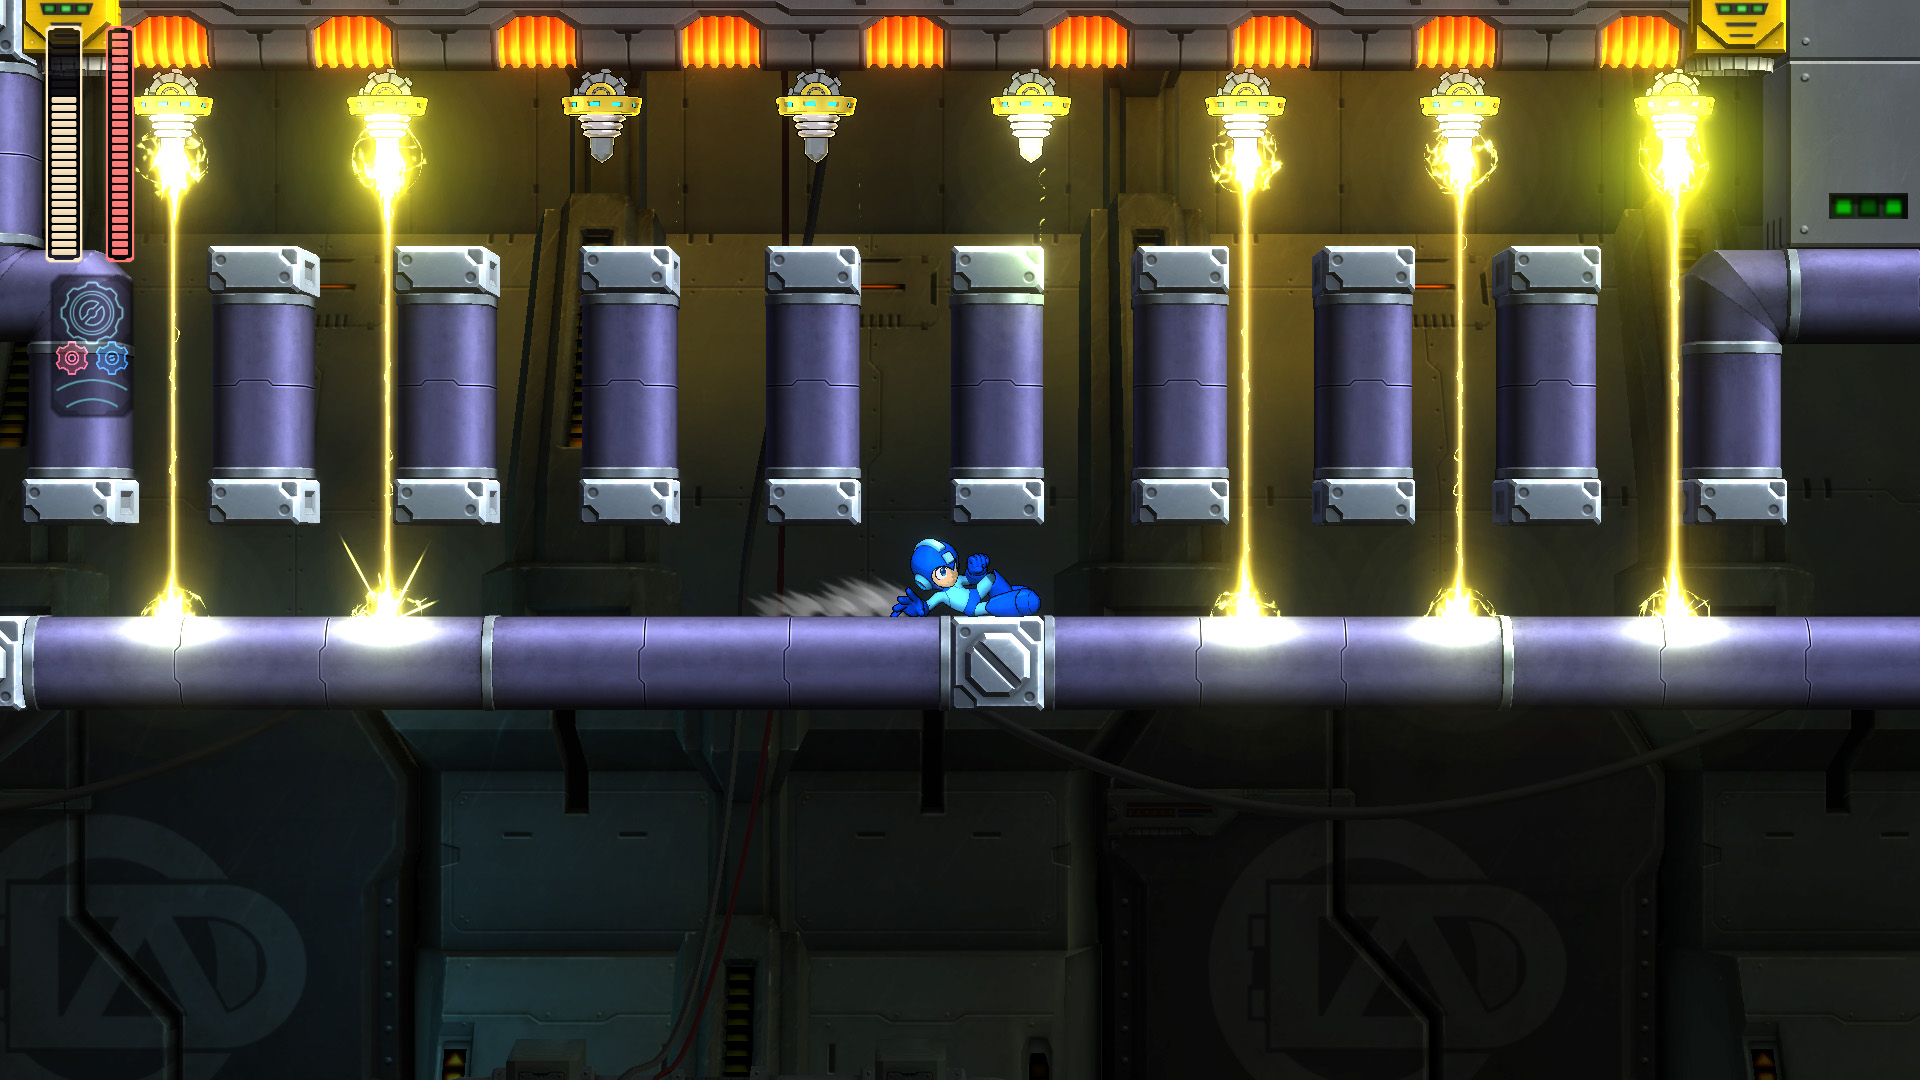 'Mega Man 11' trailer reveals release date, new mechanics